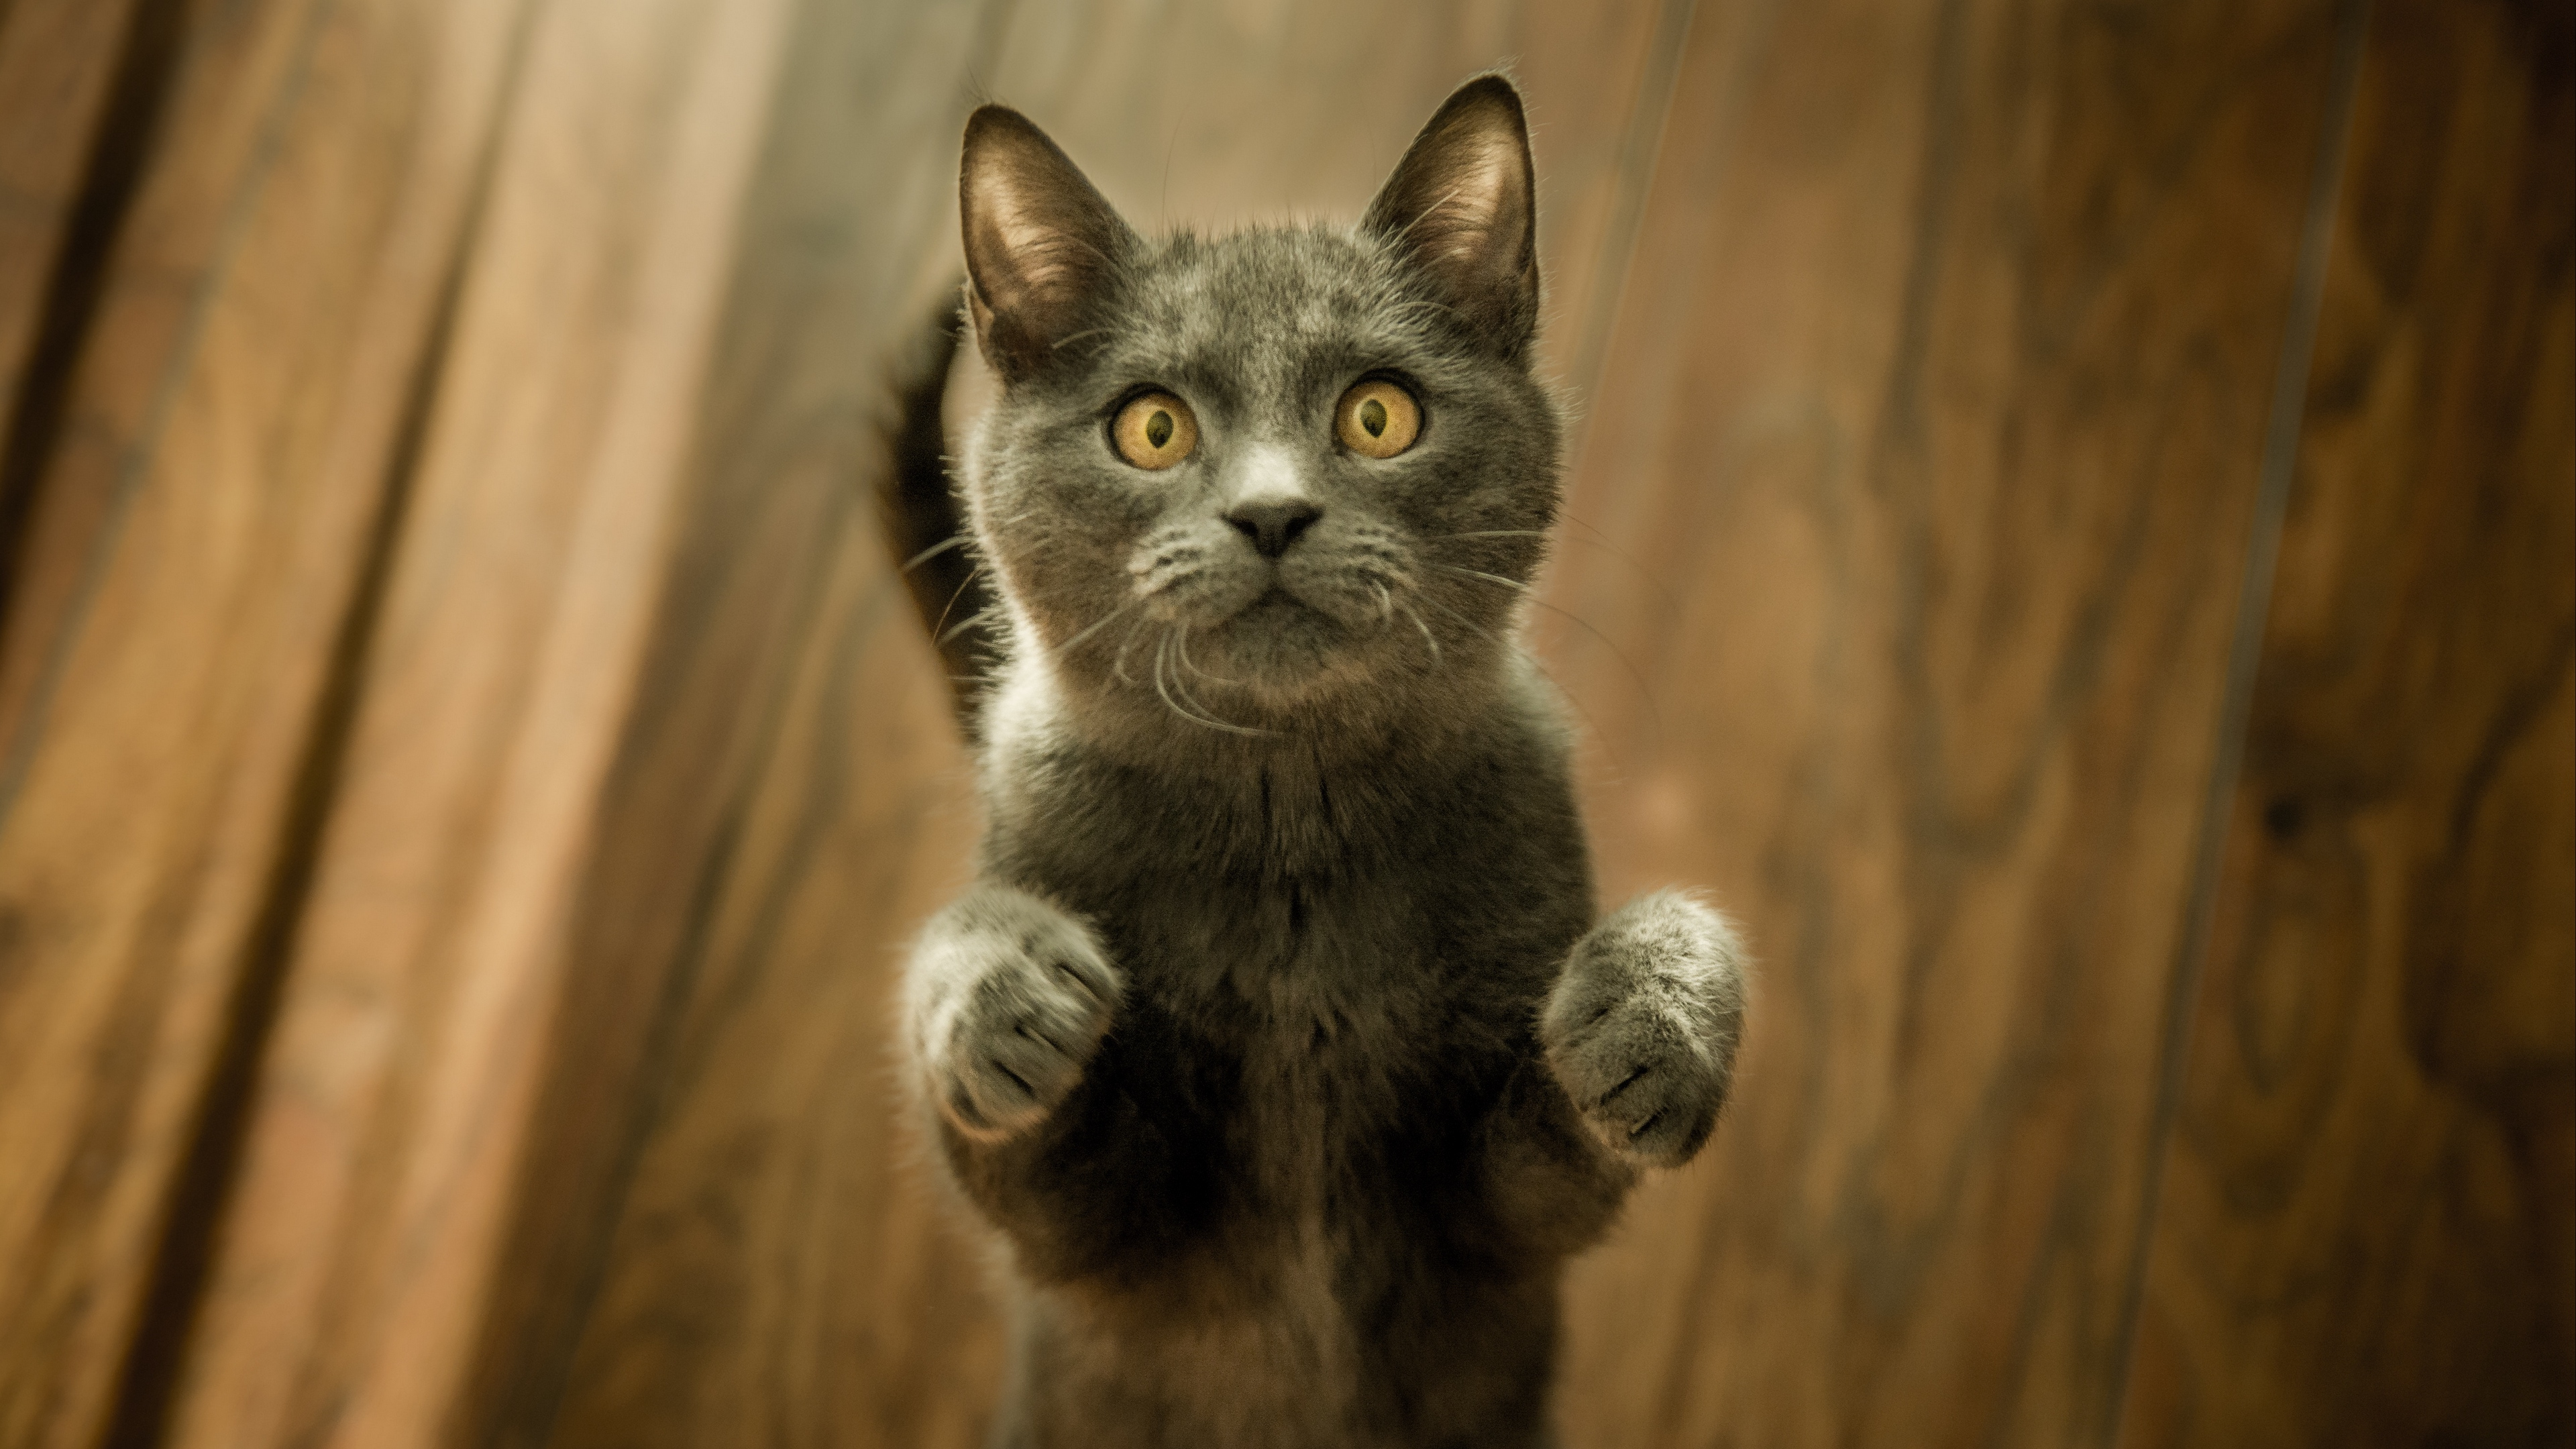 cat kitten standing gray 4k 1542241452 - cat, kitten, standing, gray 4k - Standing, Kitten, Cat